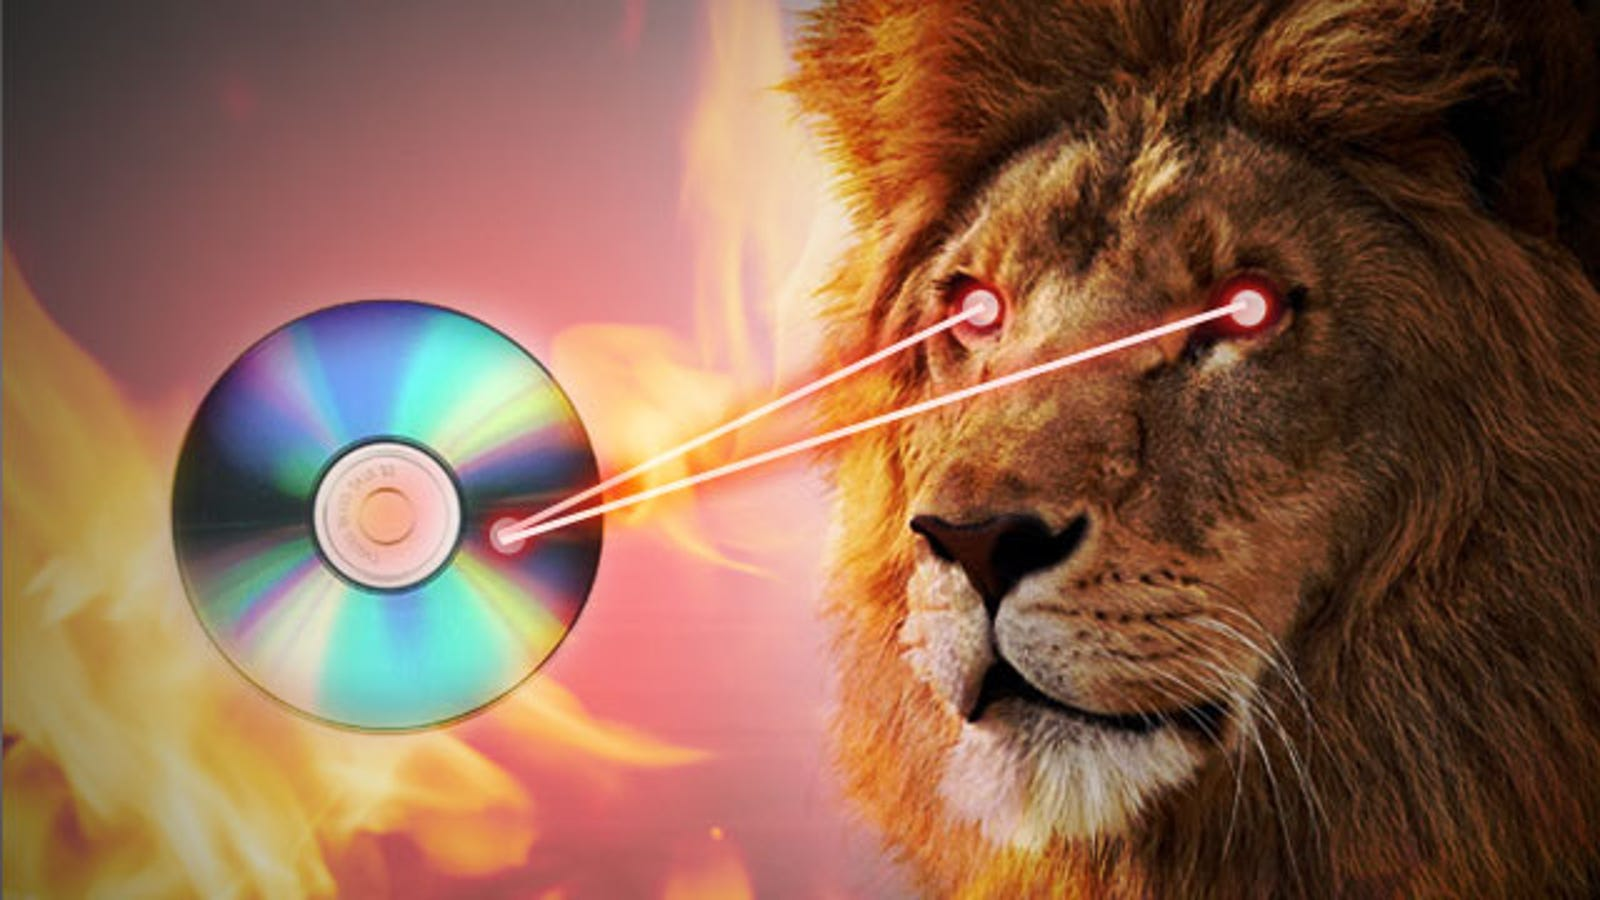 How to Burn Your Own OS X Lion Install DVD or USB Drive